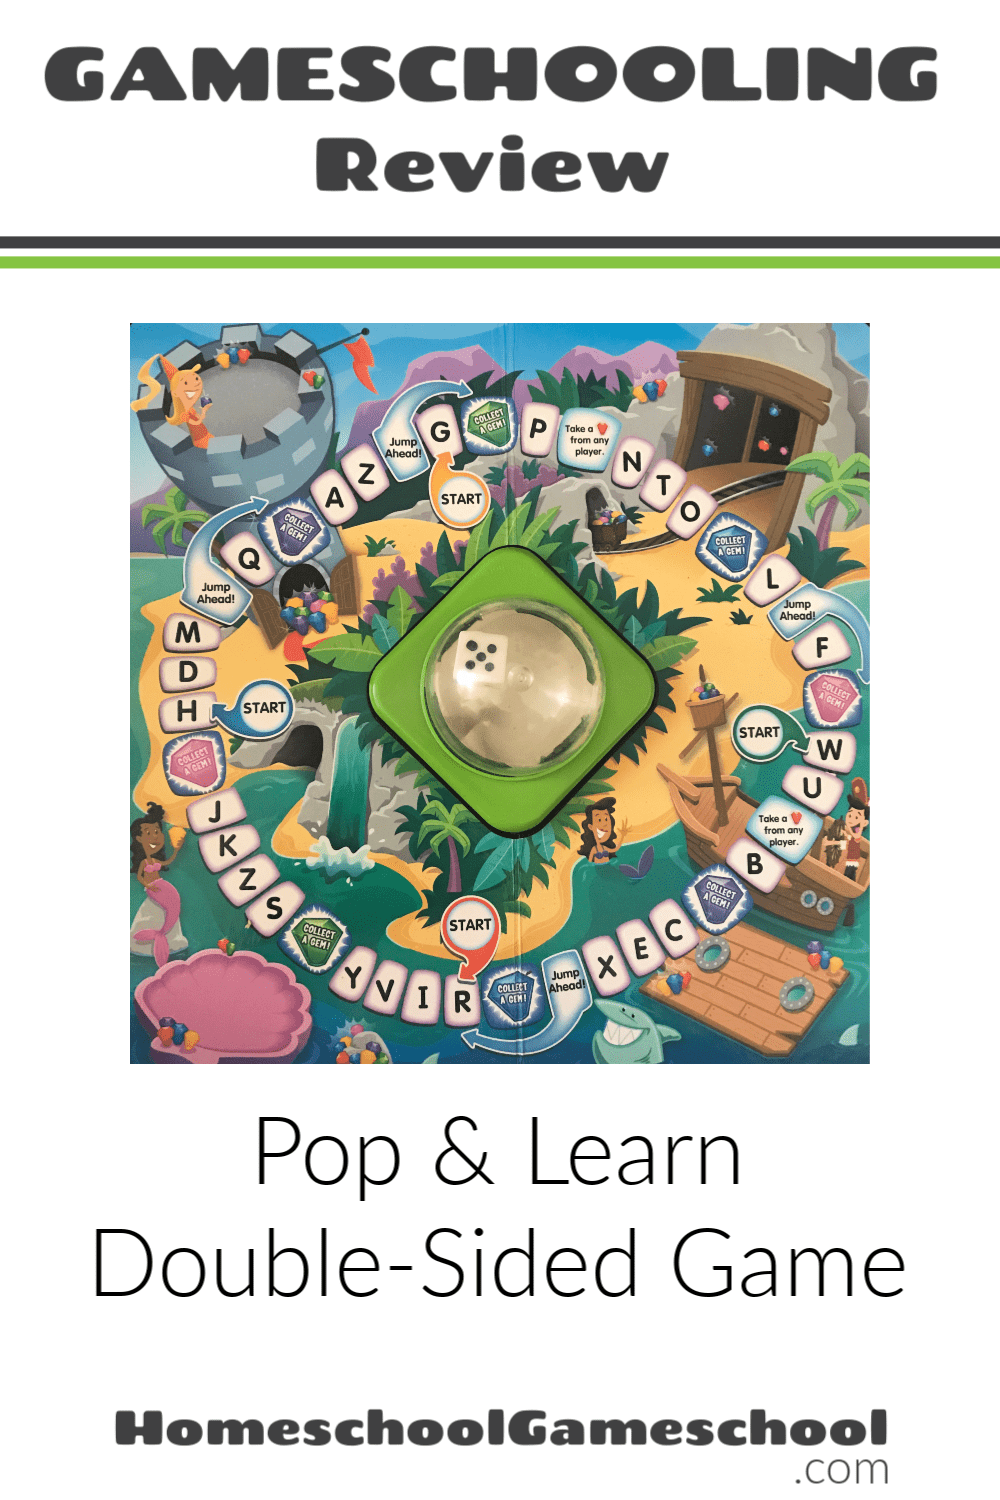 Pop & Learn Math Review